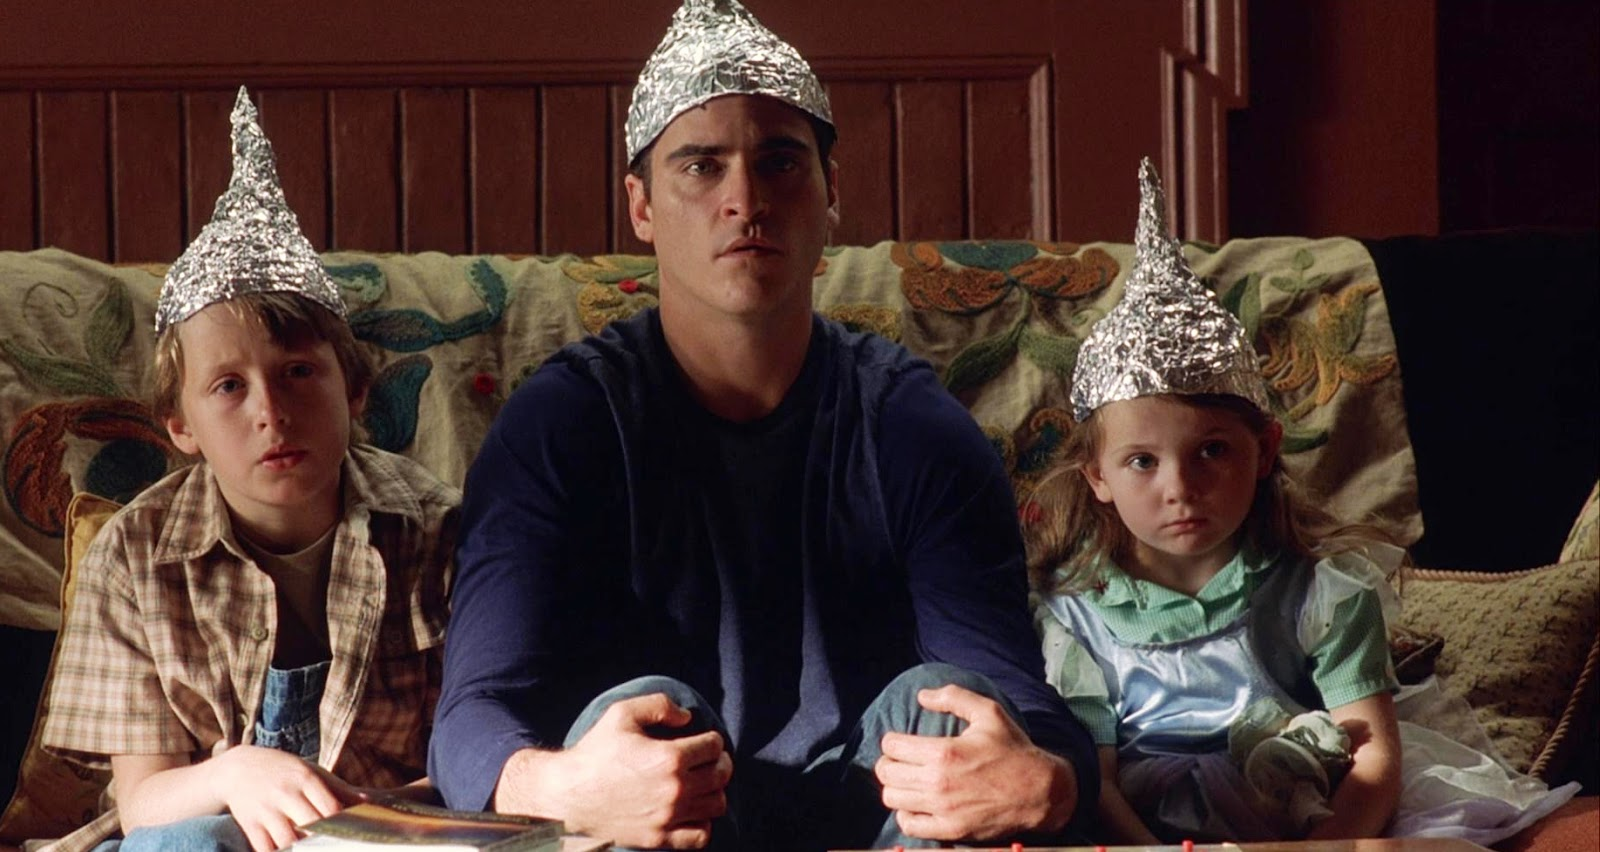 Joaquin Phoenix and the two children Rory Culkin and Abigail Breslin greet the phenomenon with aluminium hats in Signs (2002)